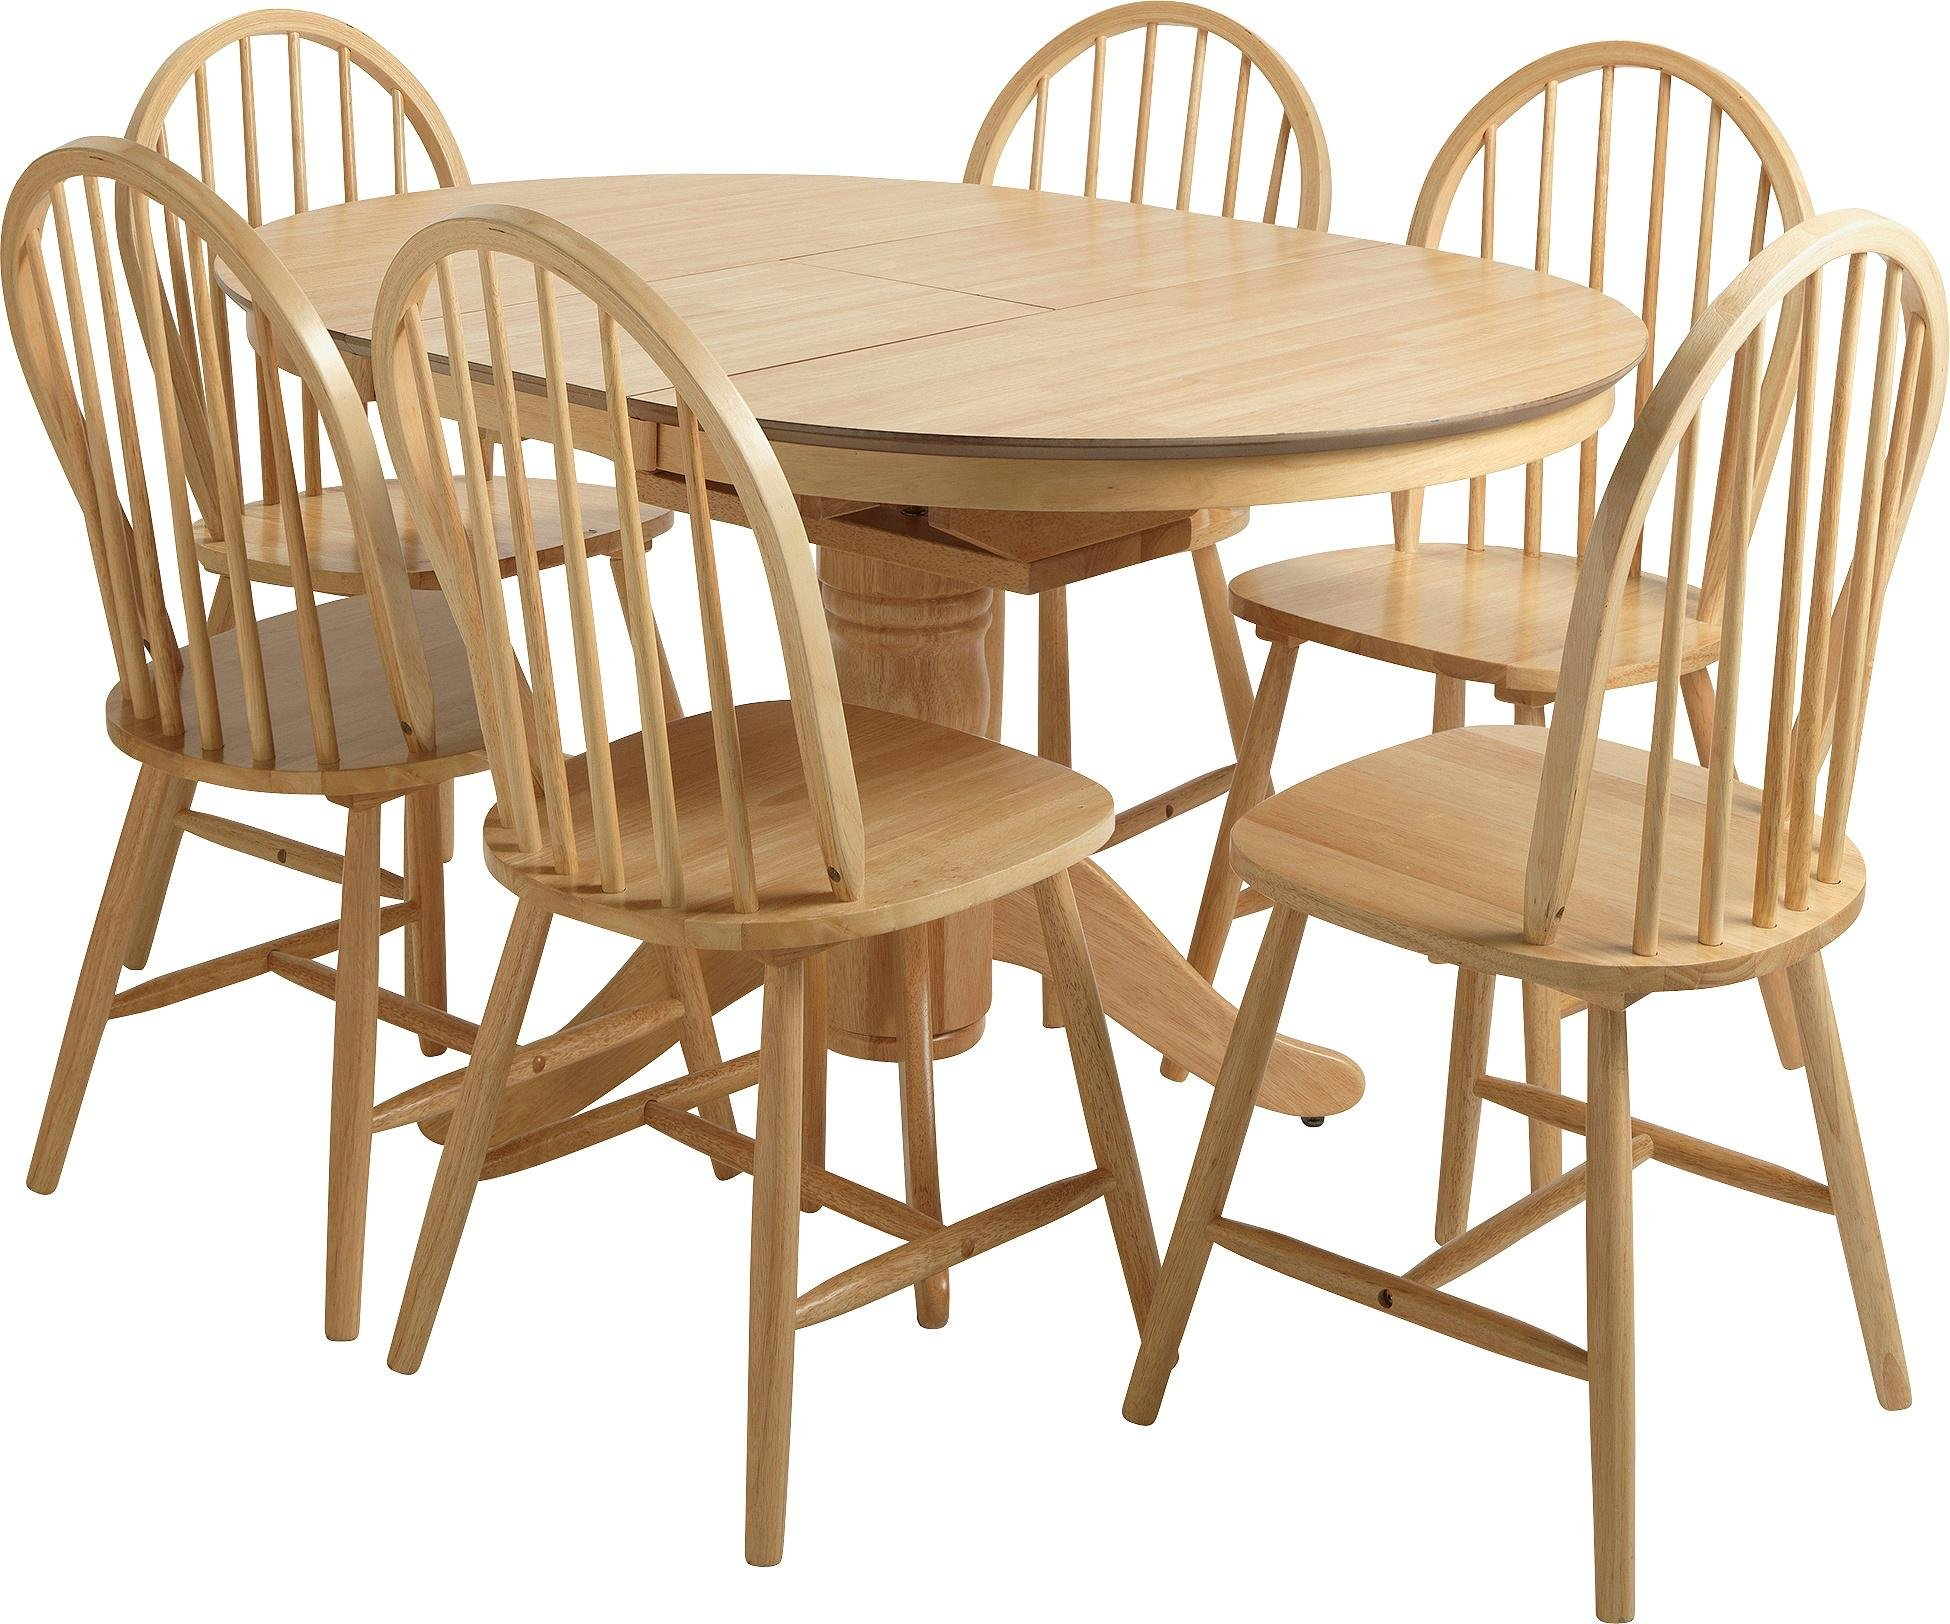 Buy Collection Kentucky Ext Dining Table and 6 Chairs  : 6035653RZ001AUC1597414Webampw570amph513 from www.argos.co.uk size 570 x 513 jpeg 52kB